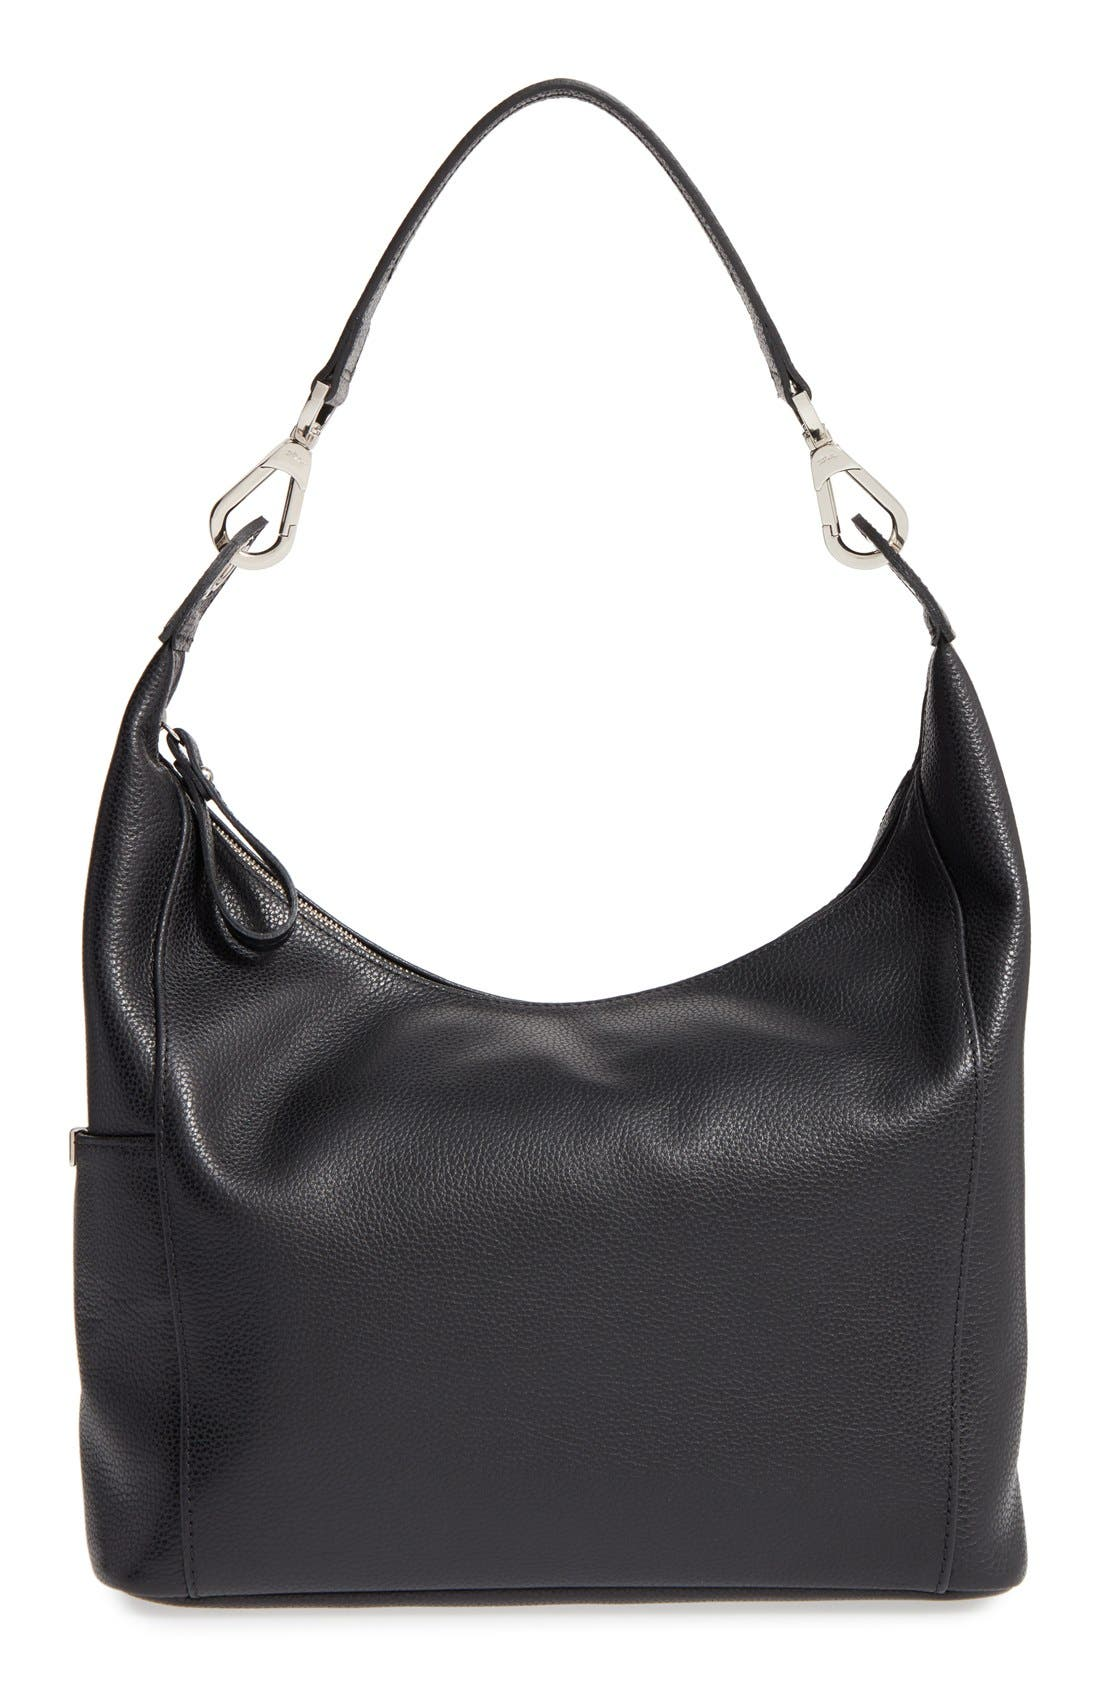 'Le Foulonne' Leather Hobo Bag,                             Main thumbnail 1, color,                             Black